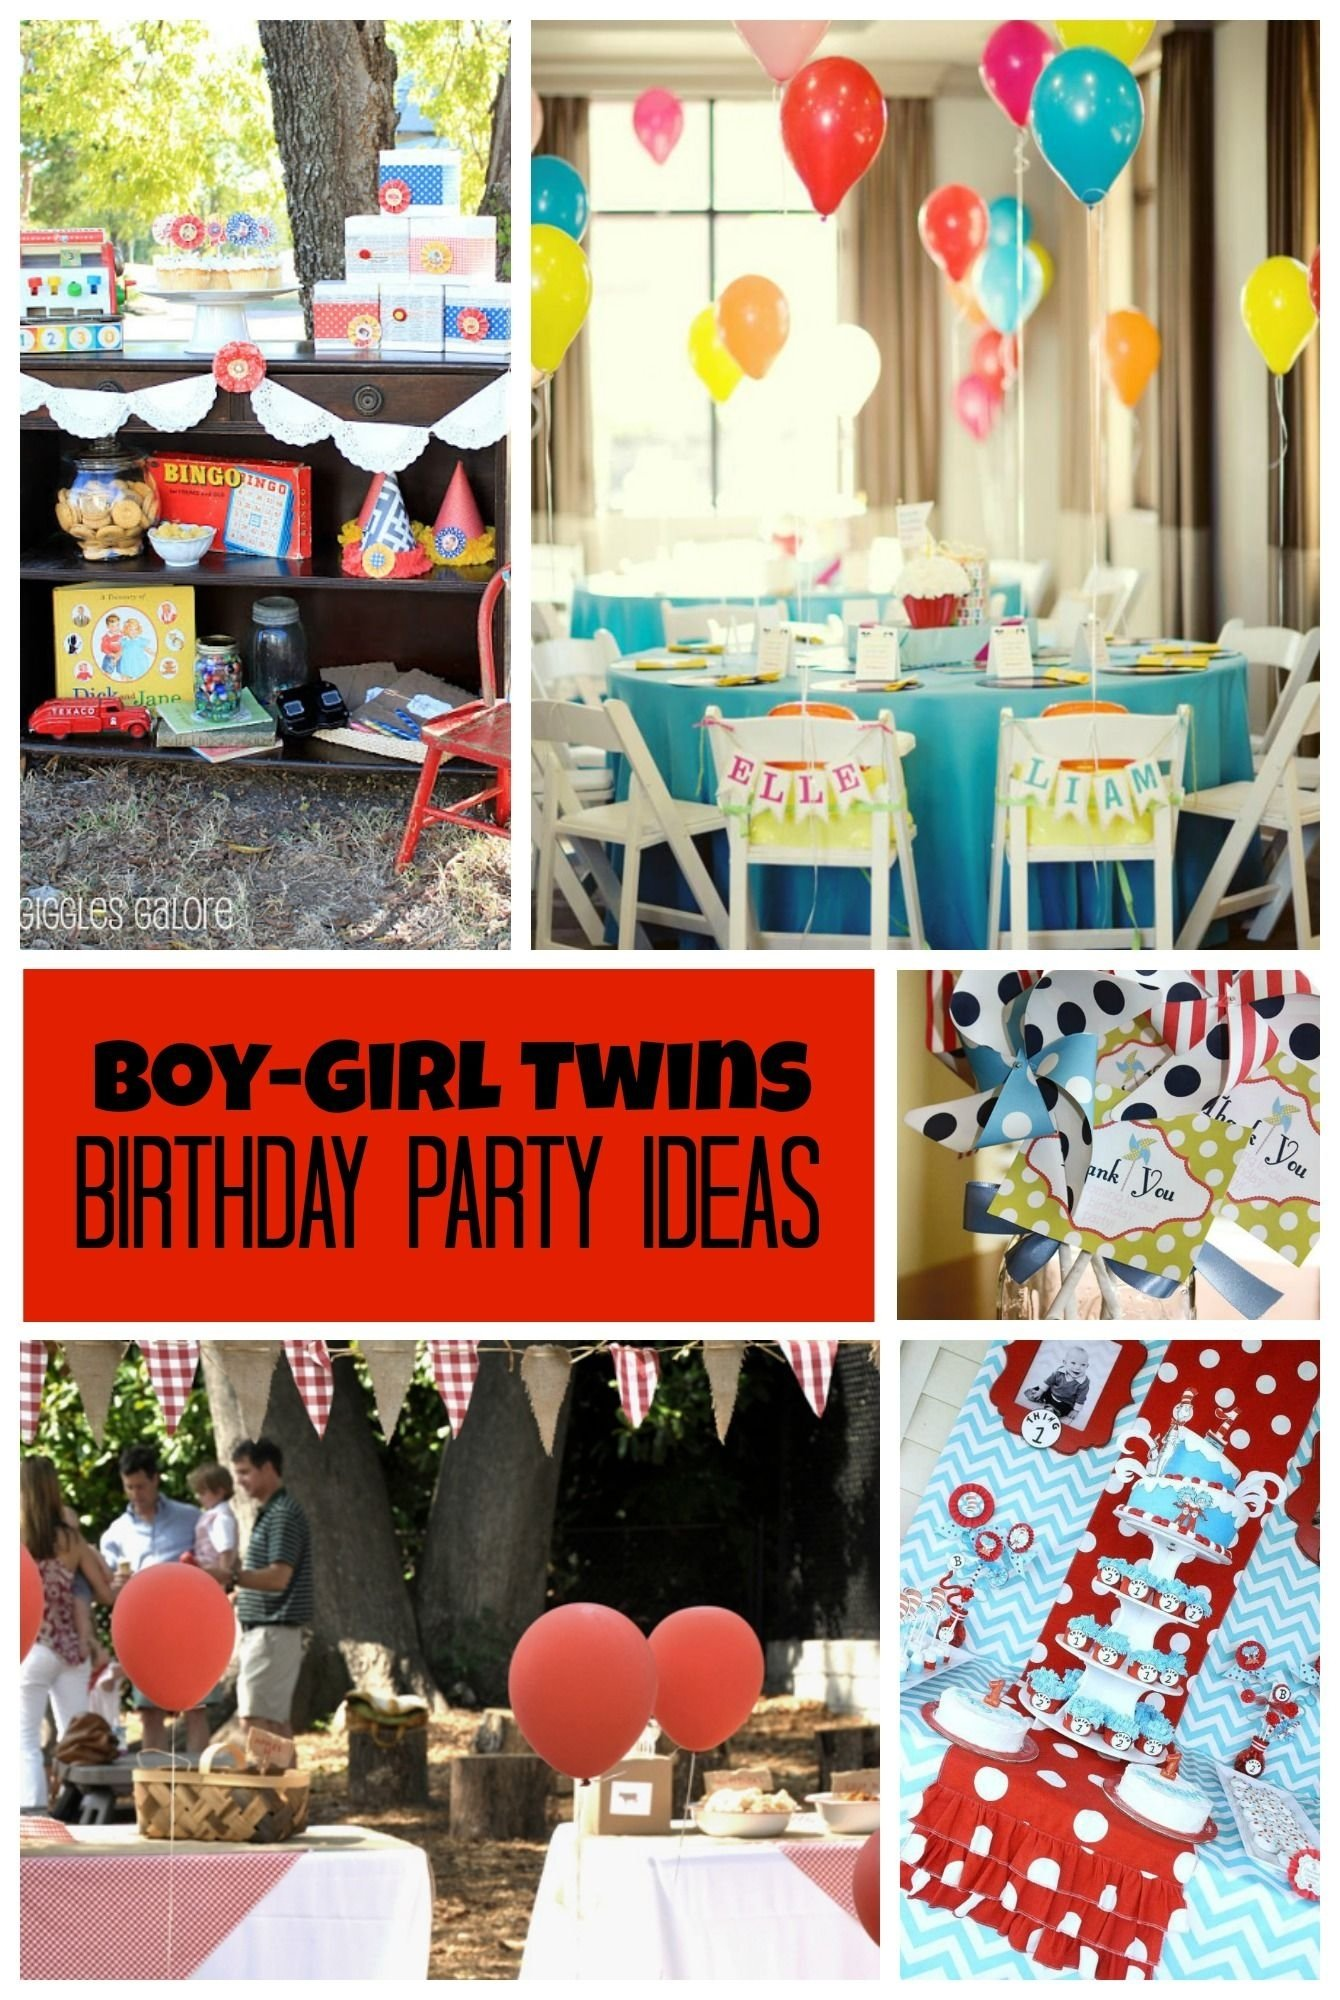 twins: birthday party ideas for boy girl twins | twin birthday